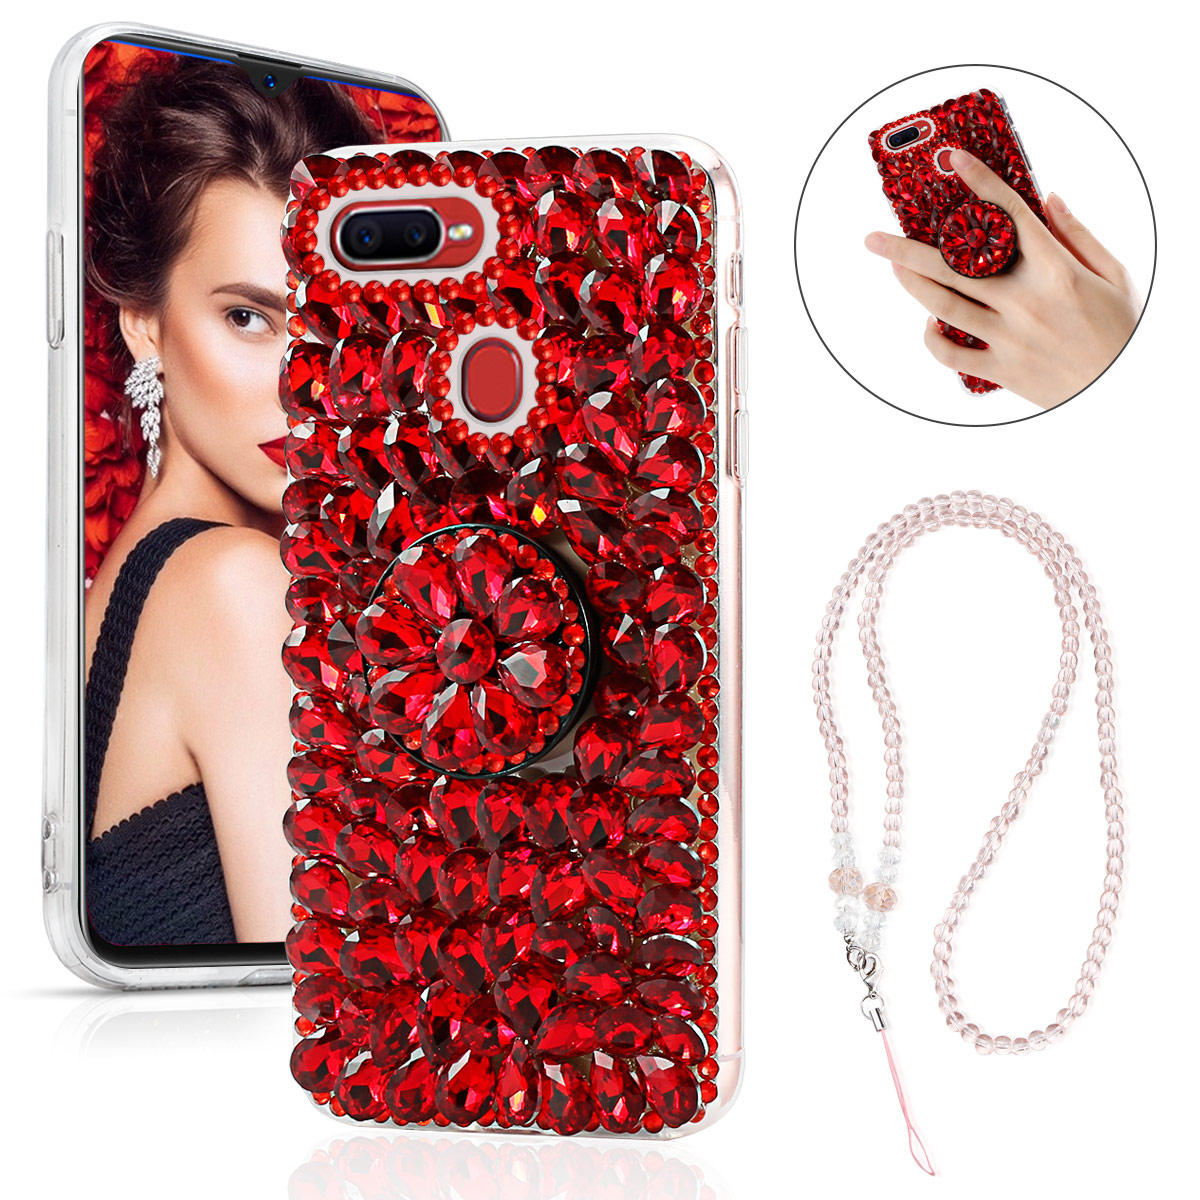 US $4.99 35% OFF|For OPPO F9 Phone Case 3D Handmade Bright Shining Crystal Rhinestone Bling Diamond Phone Cover with Pop phone holder-in Fitted Cases from Cellphones & Telecommunications on Aliexpress.com | Alibaba Group